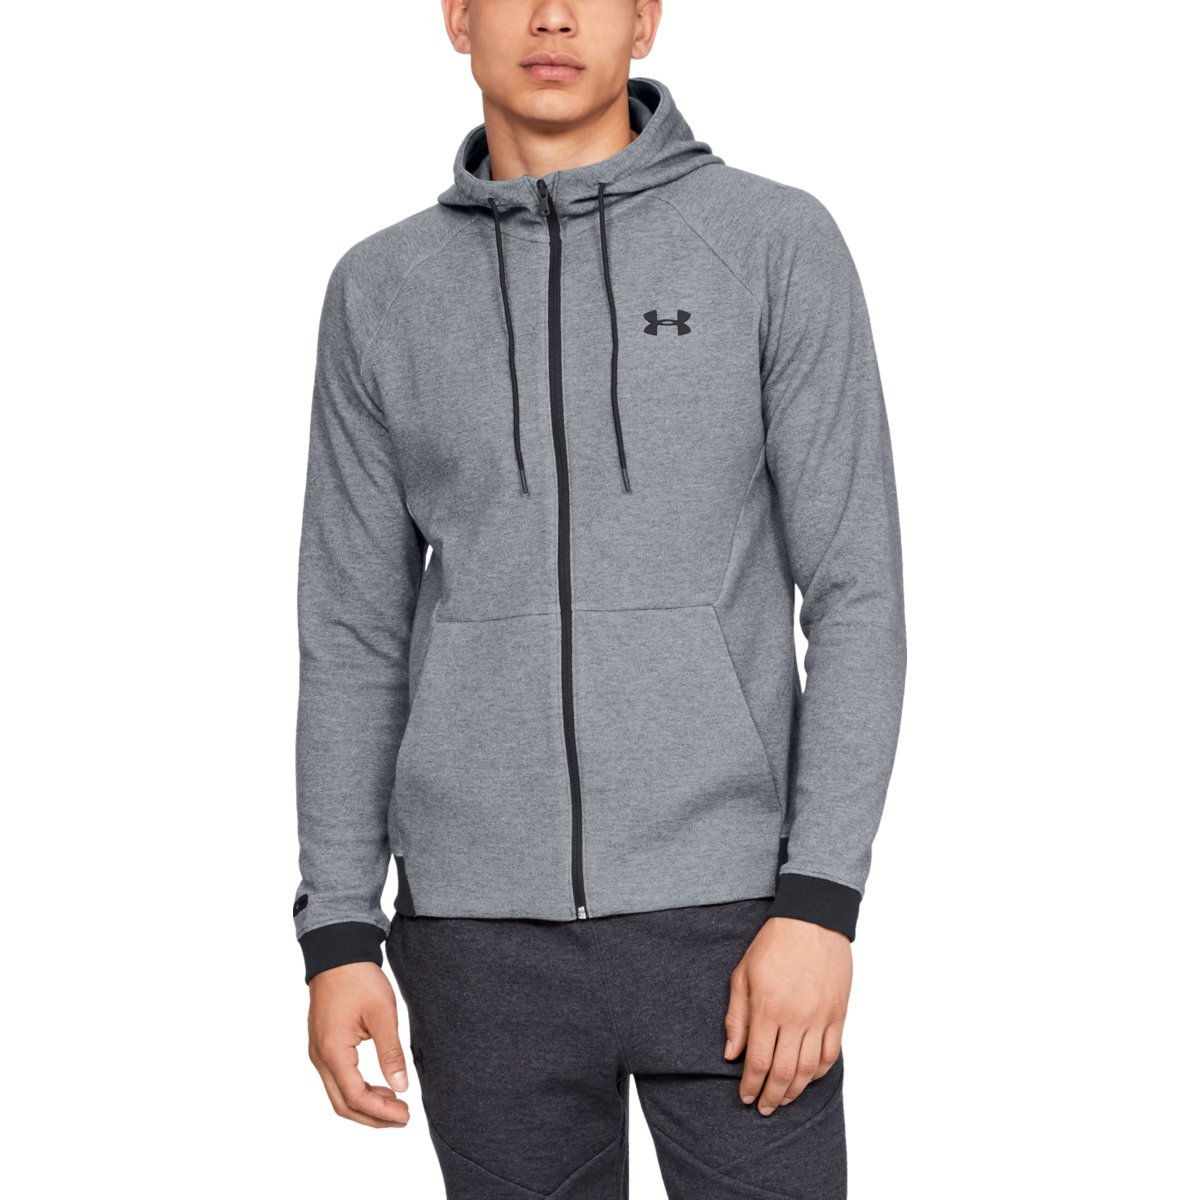 Mikina Unstoppable 2X Knit Fz Grey - Under Armour